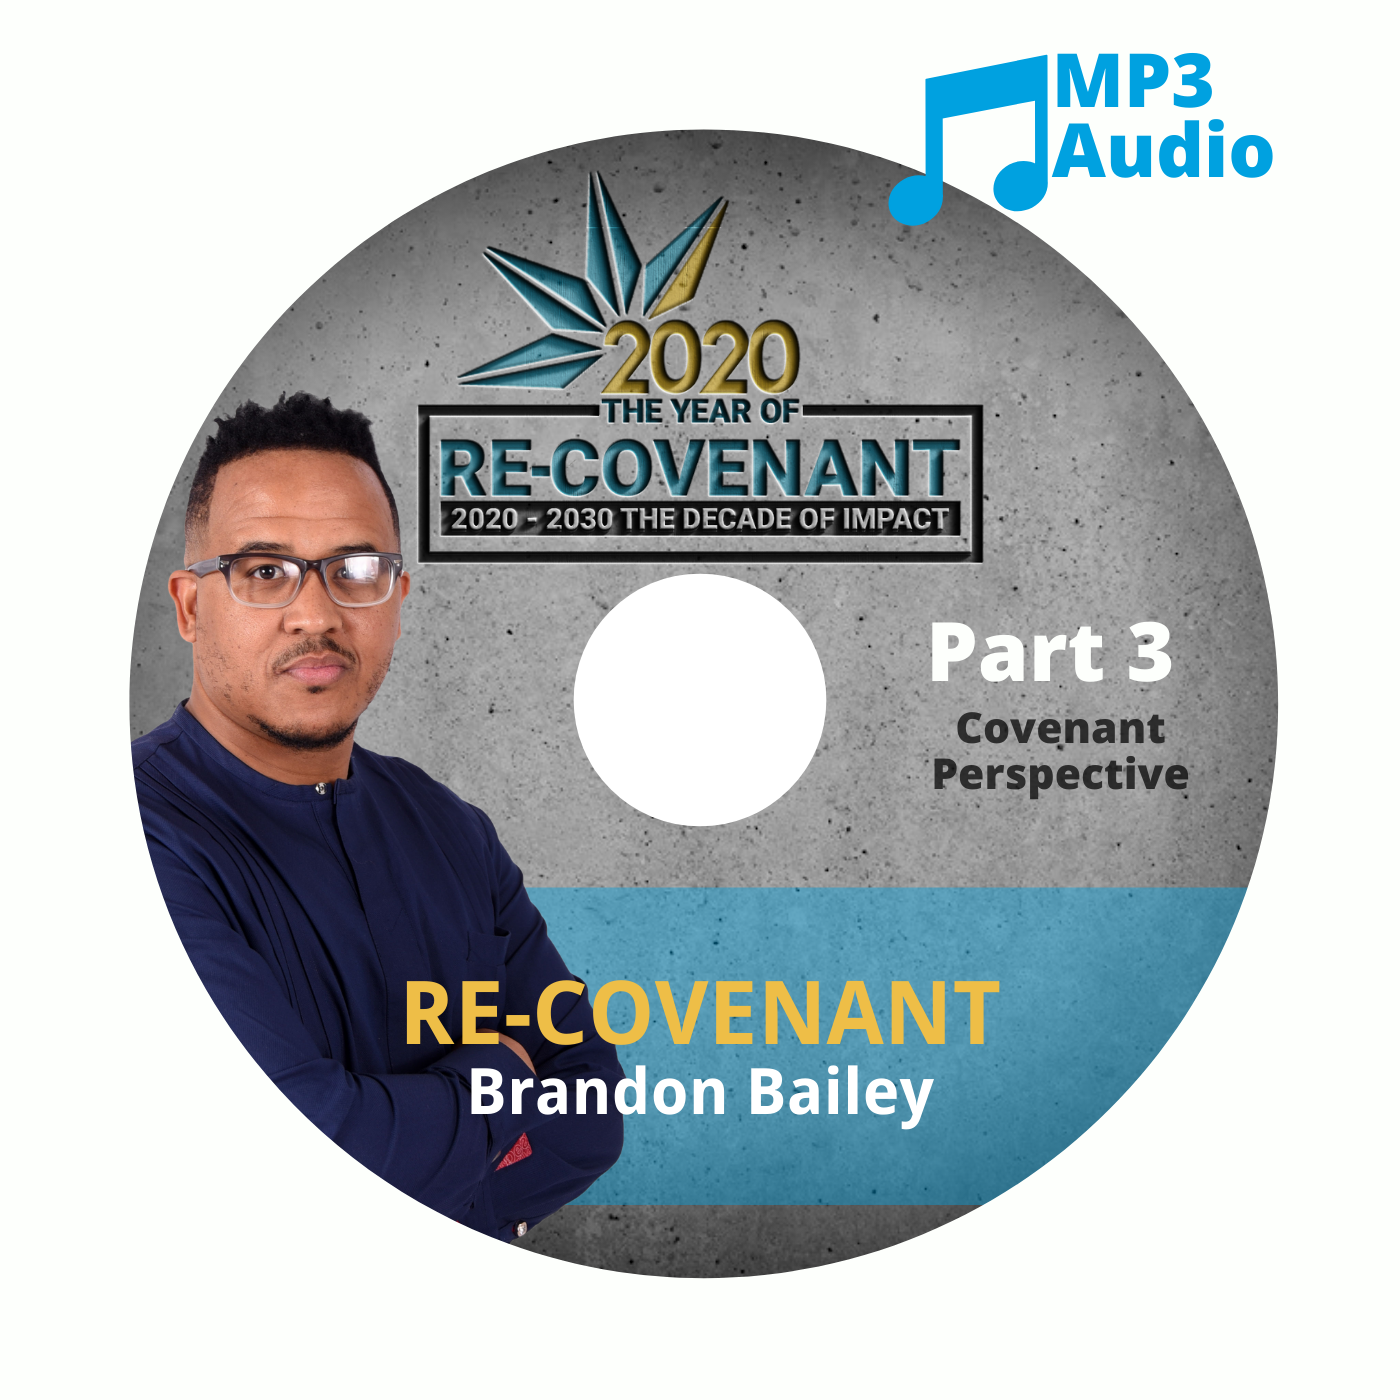 Re-Covenant Part 3: Covenant Perspective